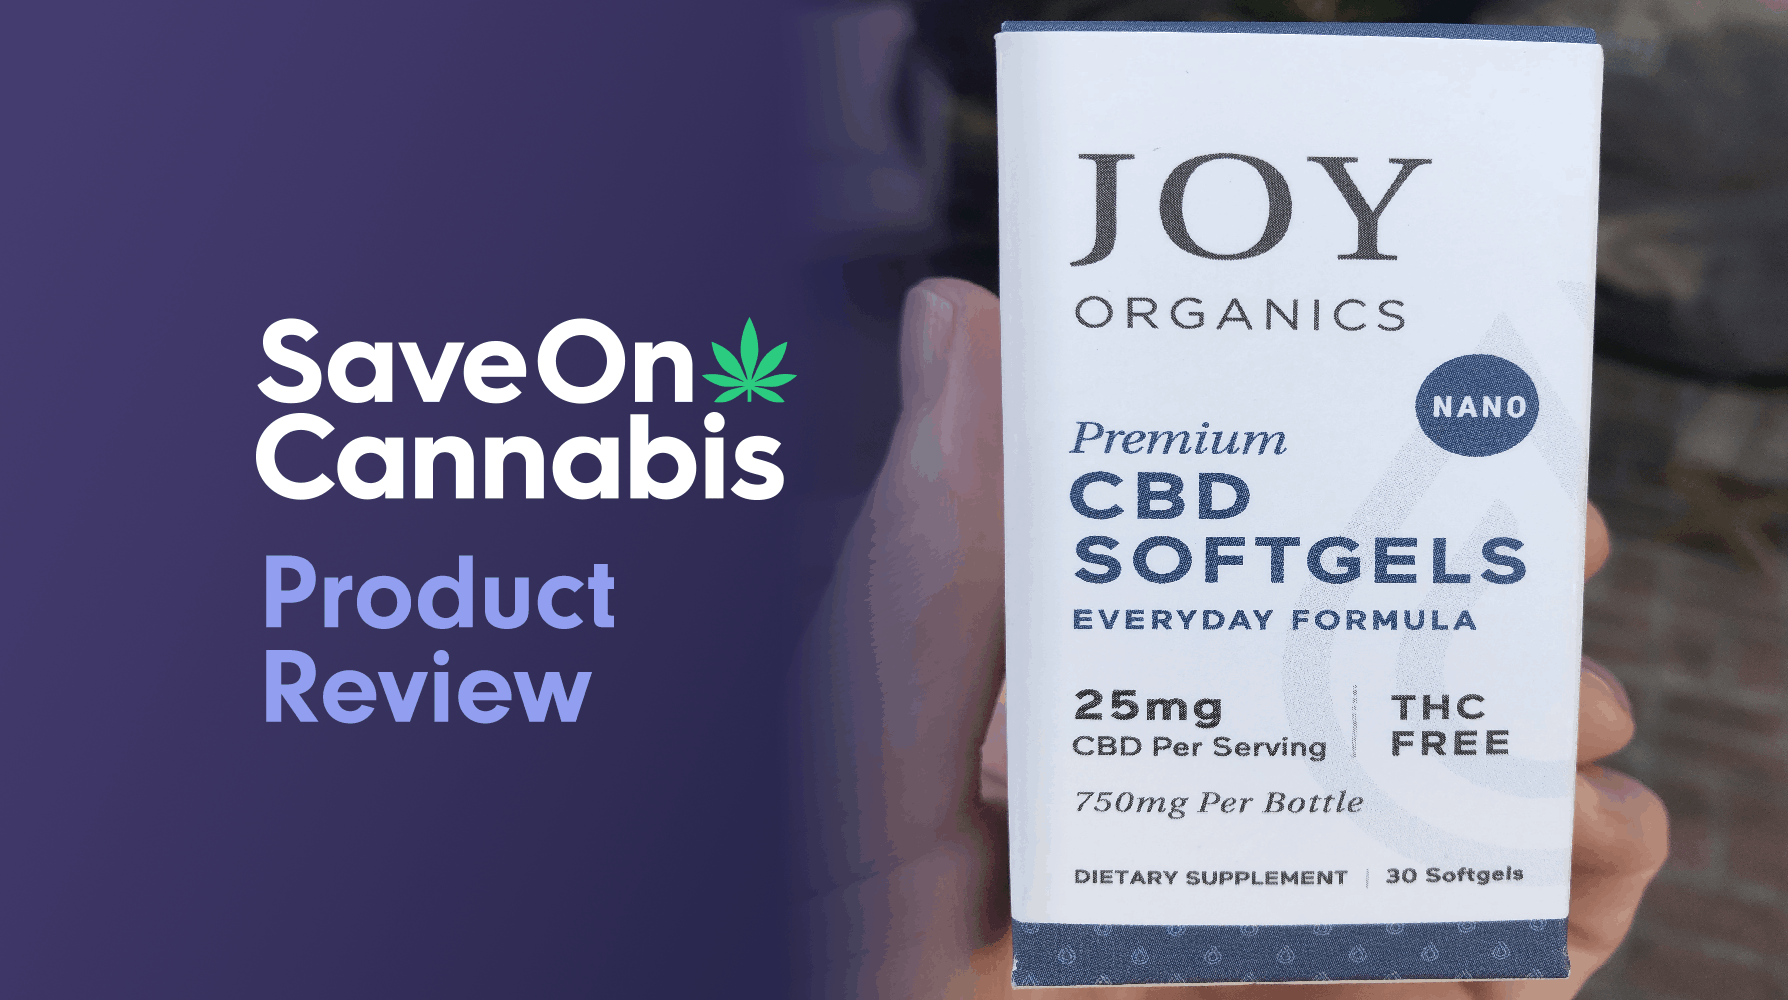 joy organics cbd softgels save on cannabis website